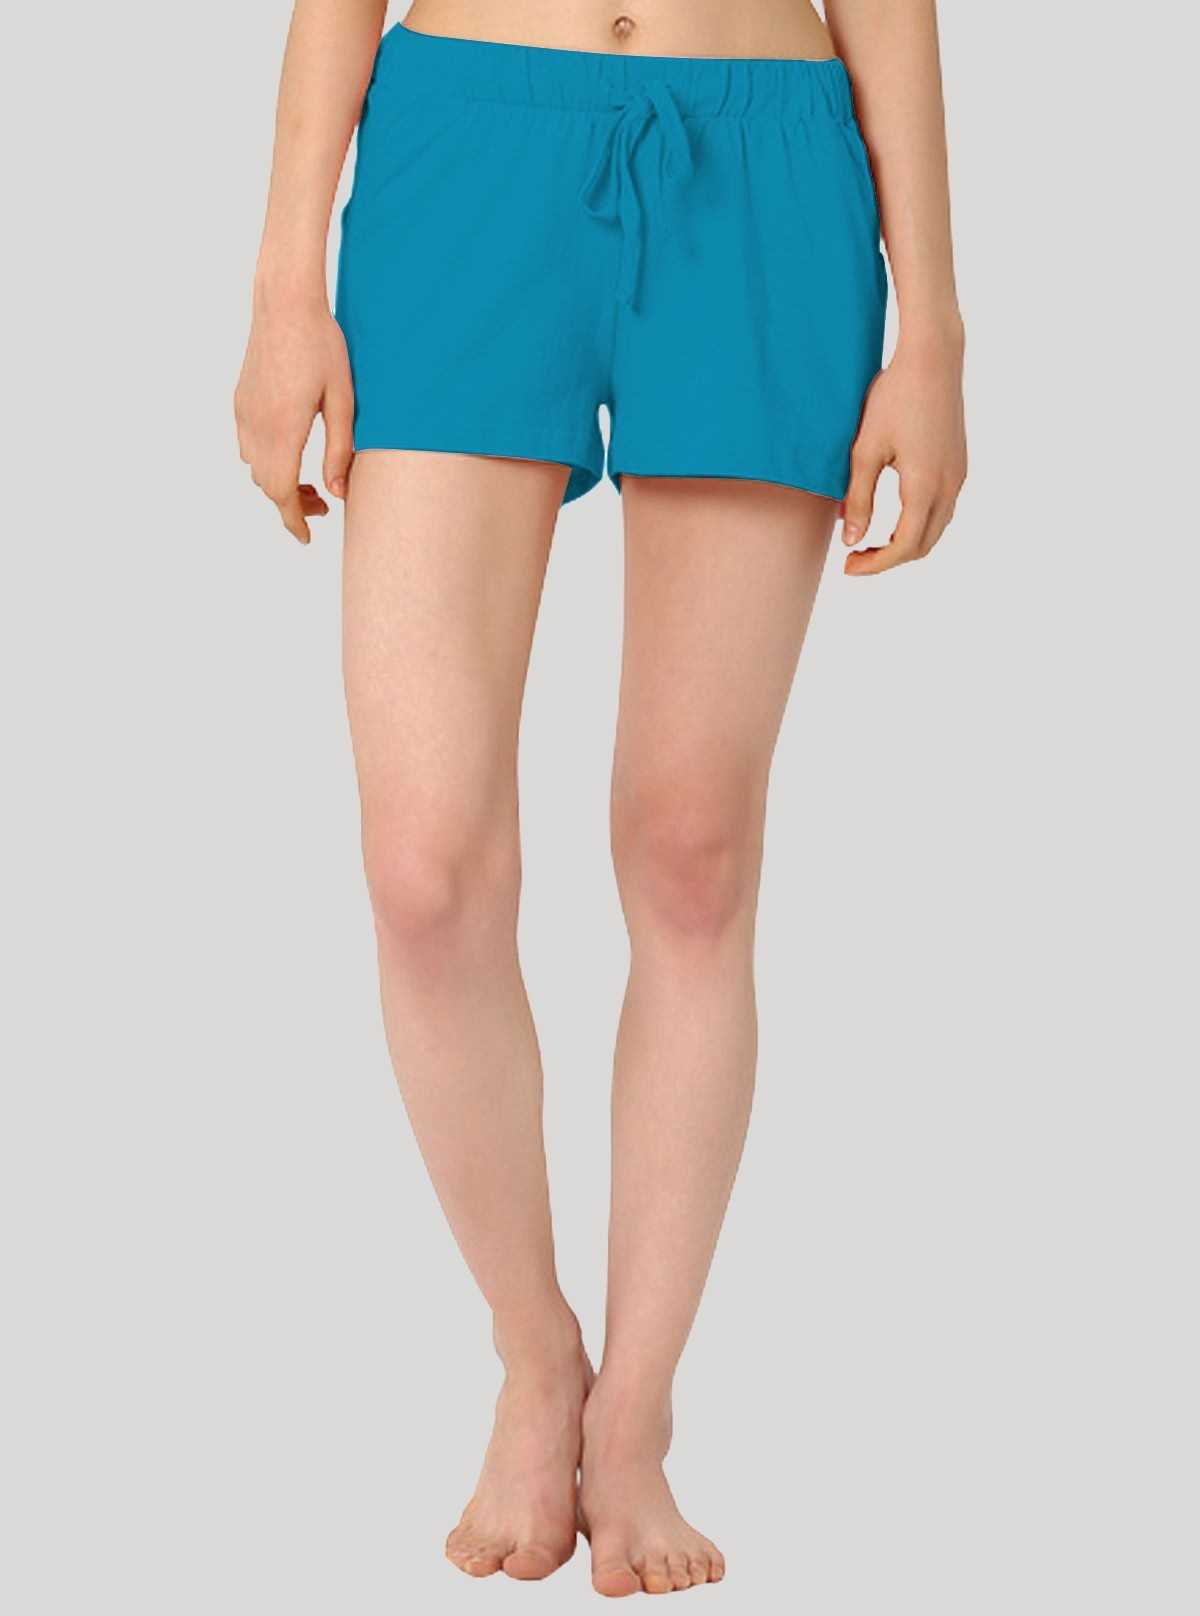 Turquiose Womens Shorts